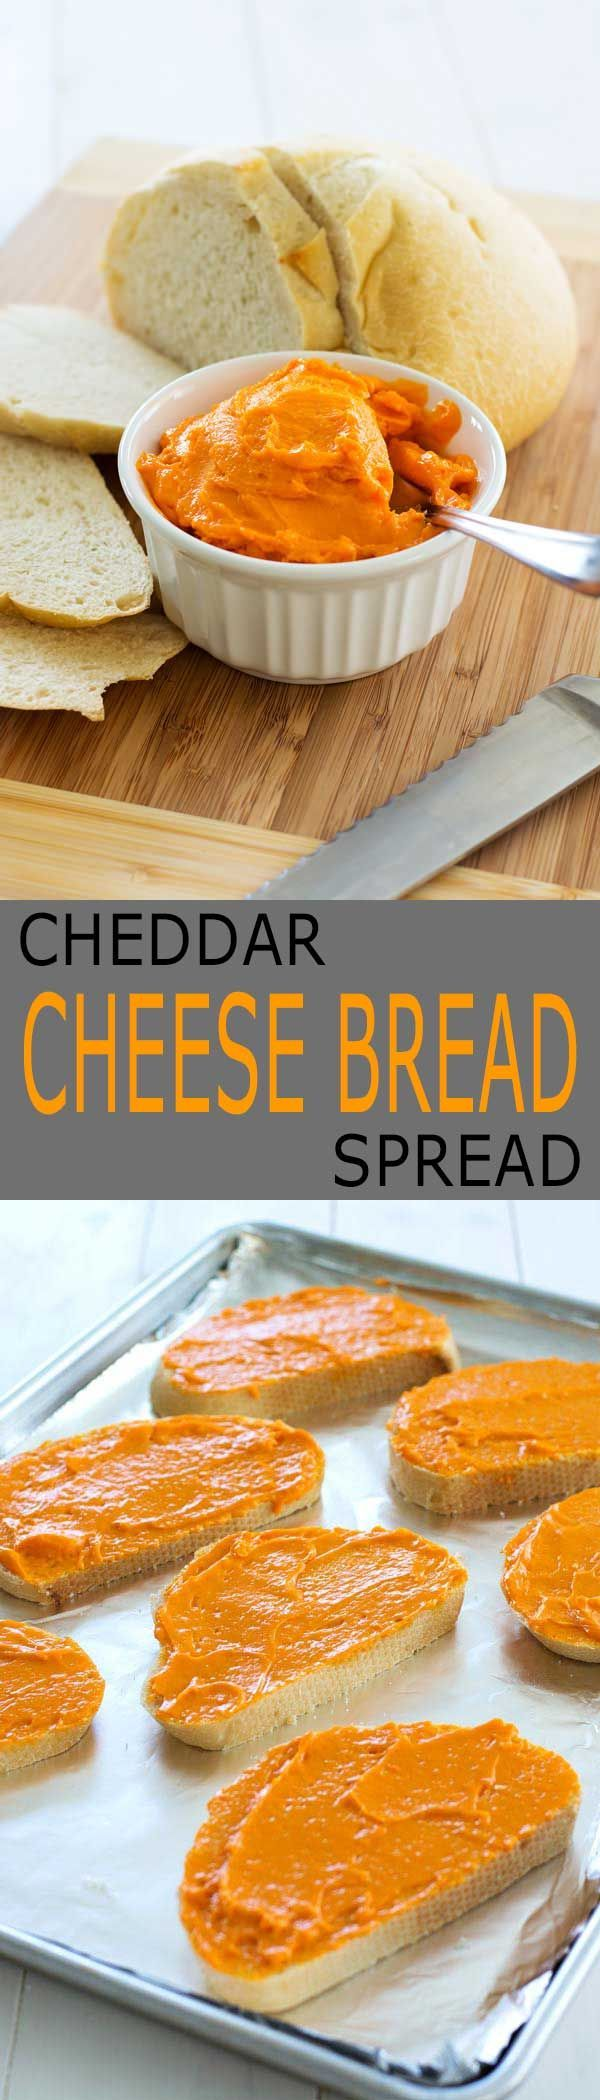 Cheddar cheese spread recipe for the best cheesy bread you've ever had! Spread…